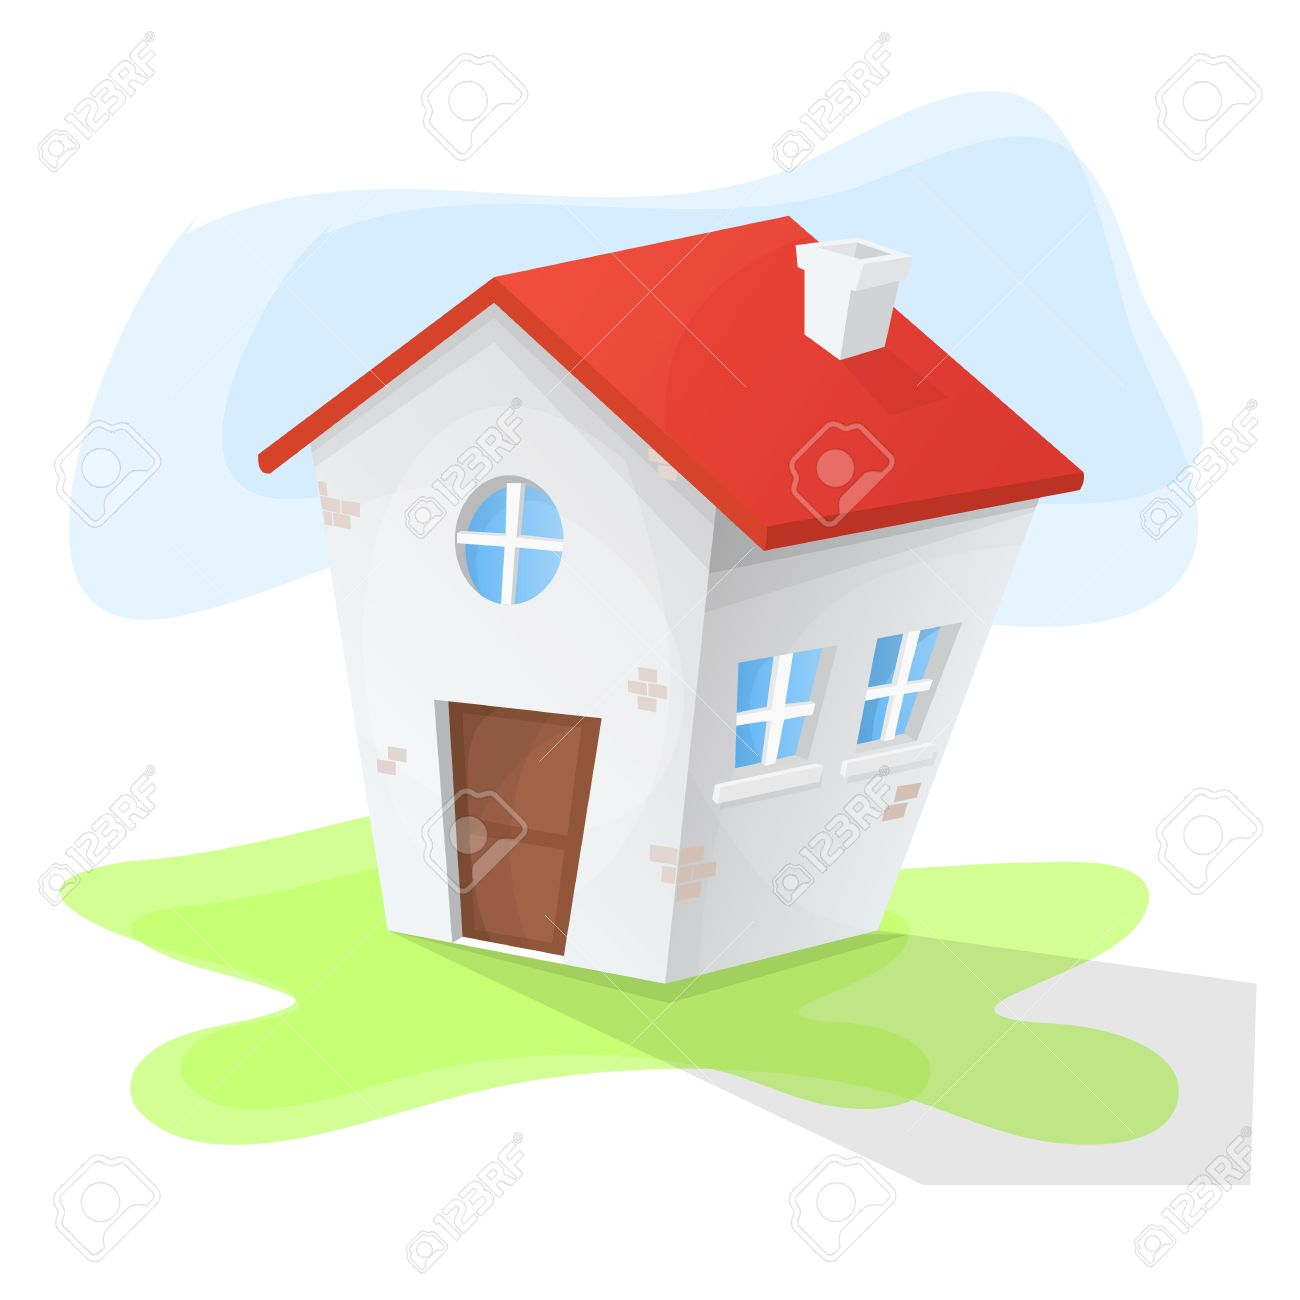 Small House Cartoon With Three Windows And Red Roof Green Land Blue Background